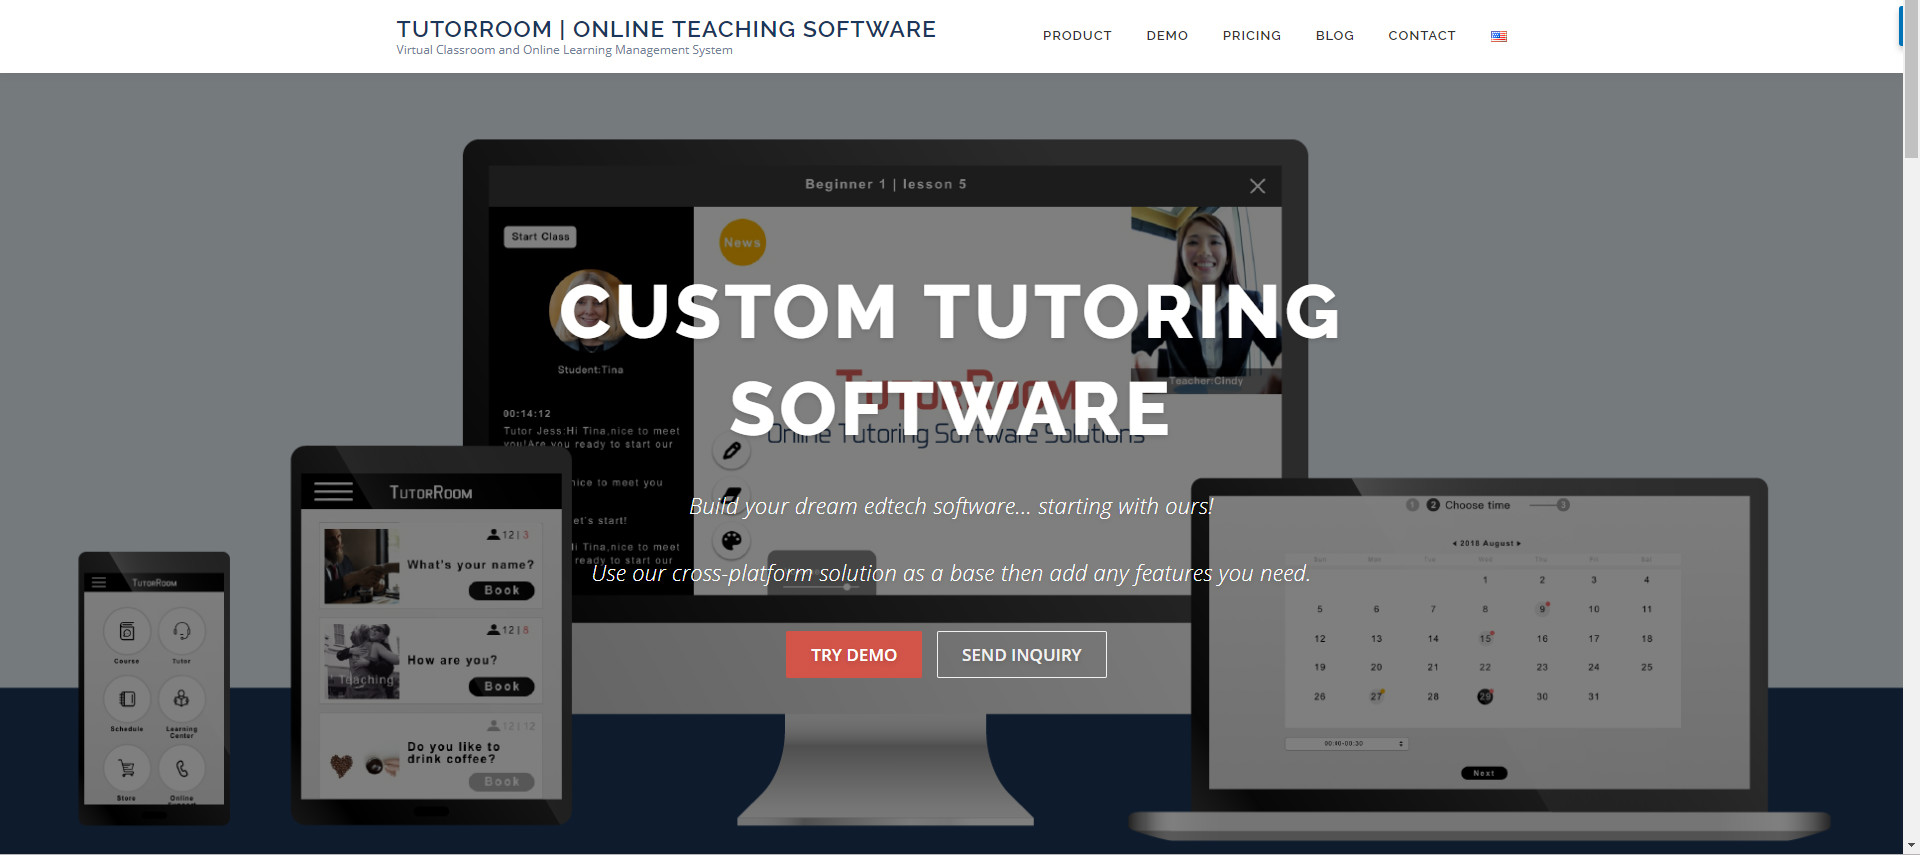 best online learning platforms 2019,online learning platforms,list of online learning platforms,online elearning platform,online learning platforms for business,online learning platforms for schools,online learning platforms comparison,best online learning platforms 2018,online learning platform examples